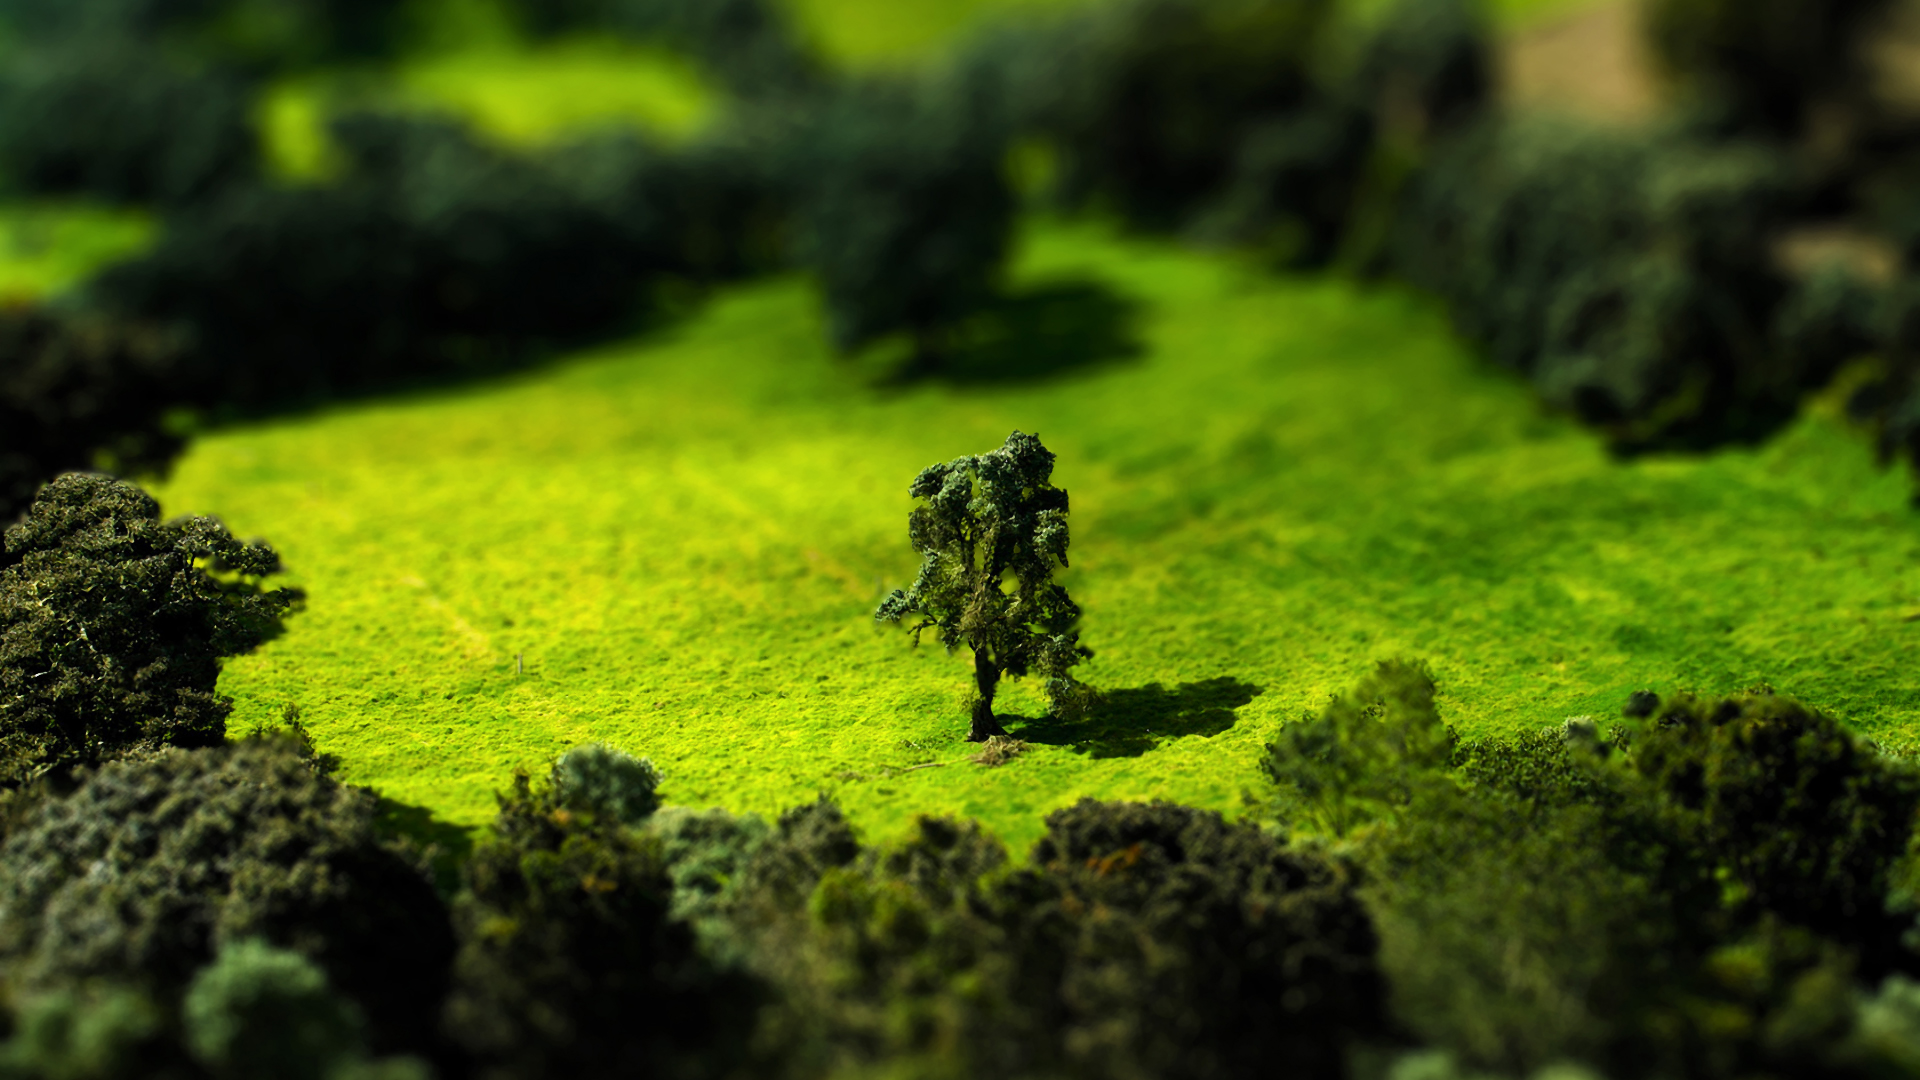 Tilt Shift Meadow 1920x1080 by Lagnar2010